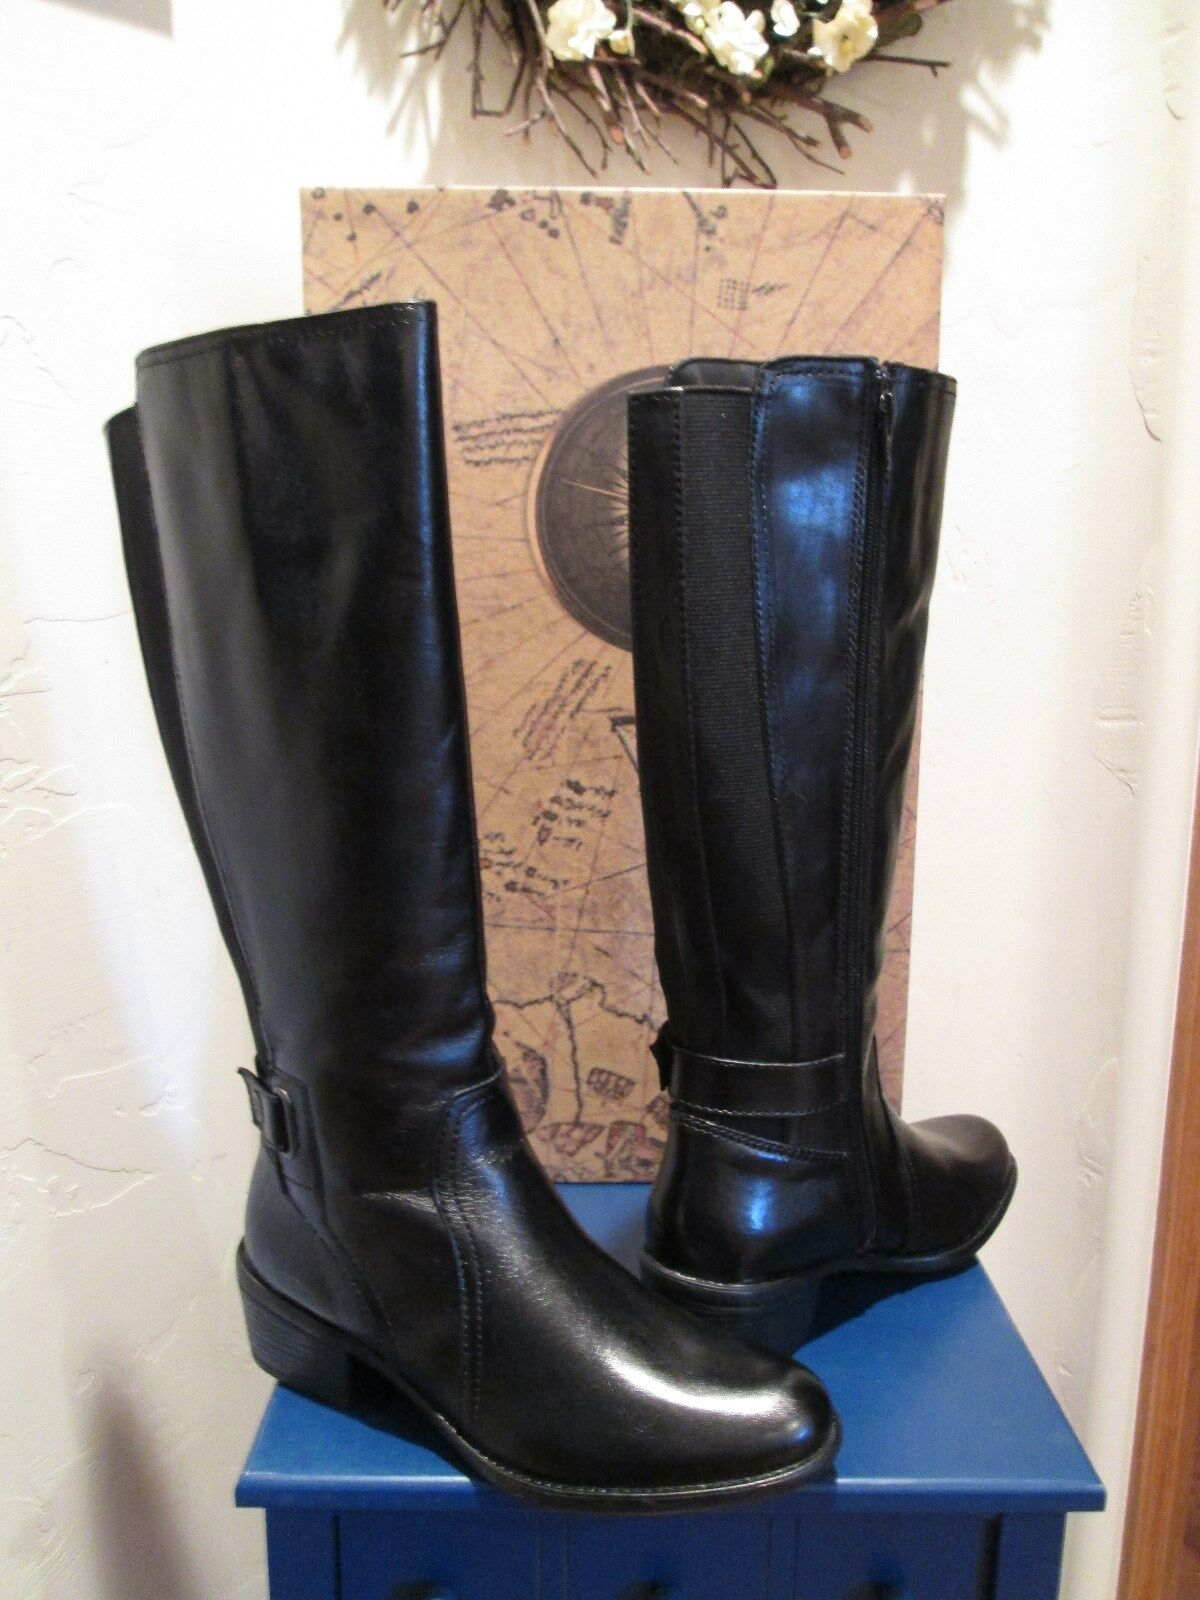 BUSSOLA STYLE ANTWERPEN BLK LEADER RIDING RIDING RIDING BOOTS SHES SZ 5 -5.5 nyA USA  fabriksförsäljning